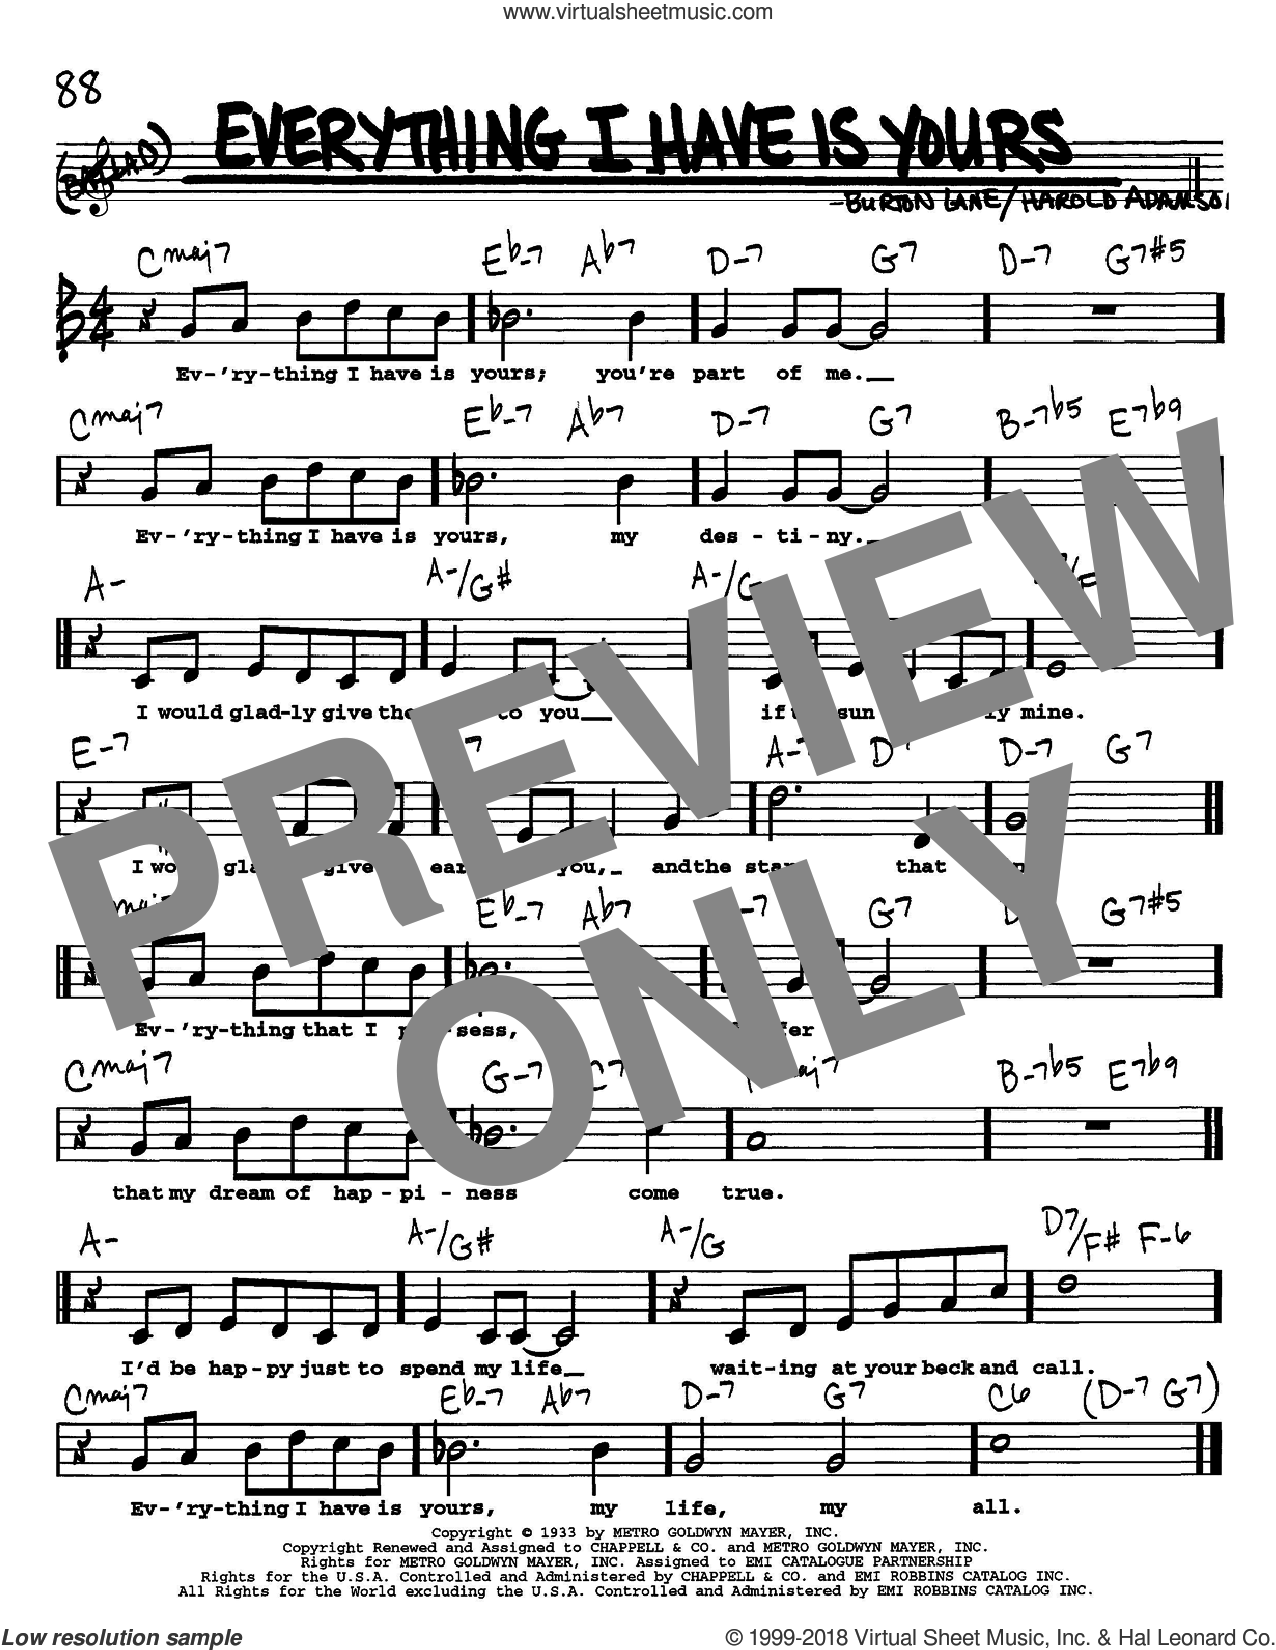 Everything I Have Is Yours sheet music for voice and other instruments (Vocal Volume 1) by Burton Lane and Harold Adamson